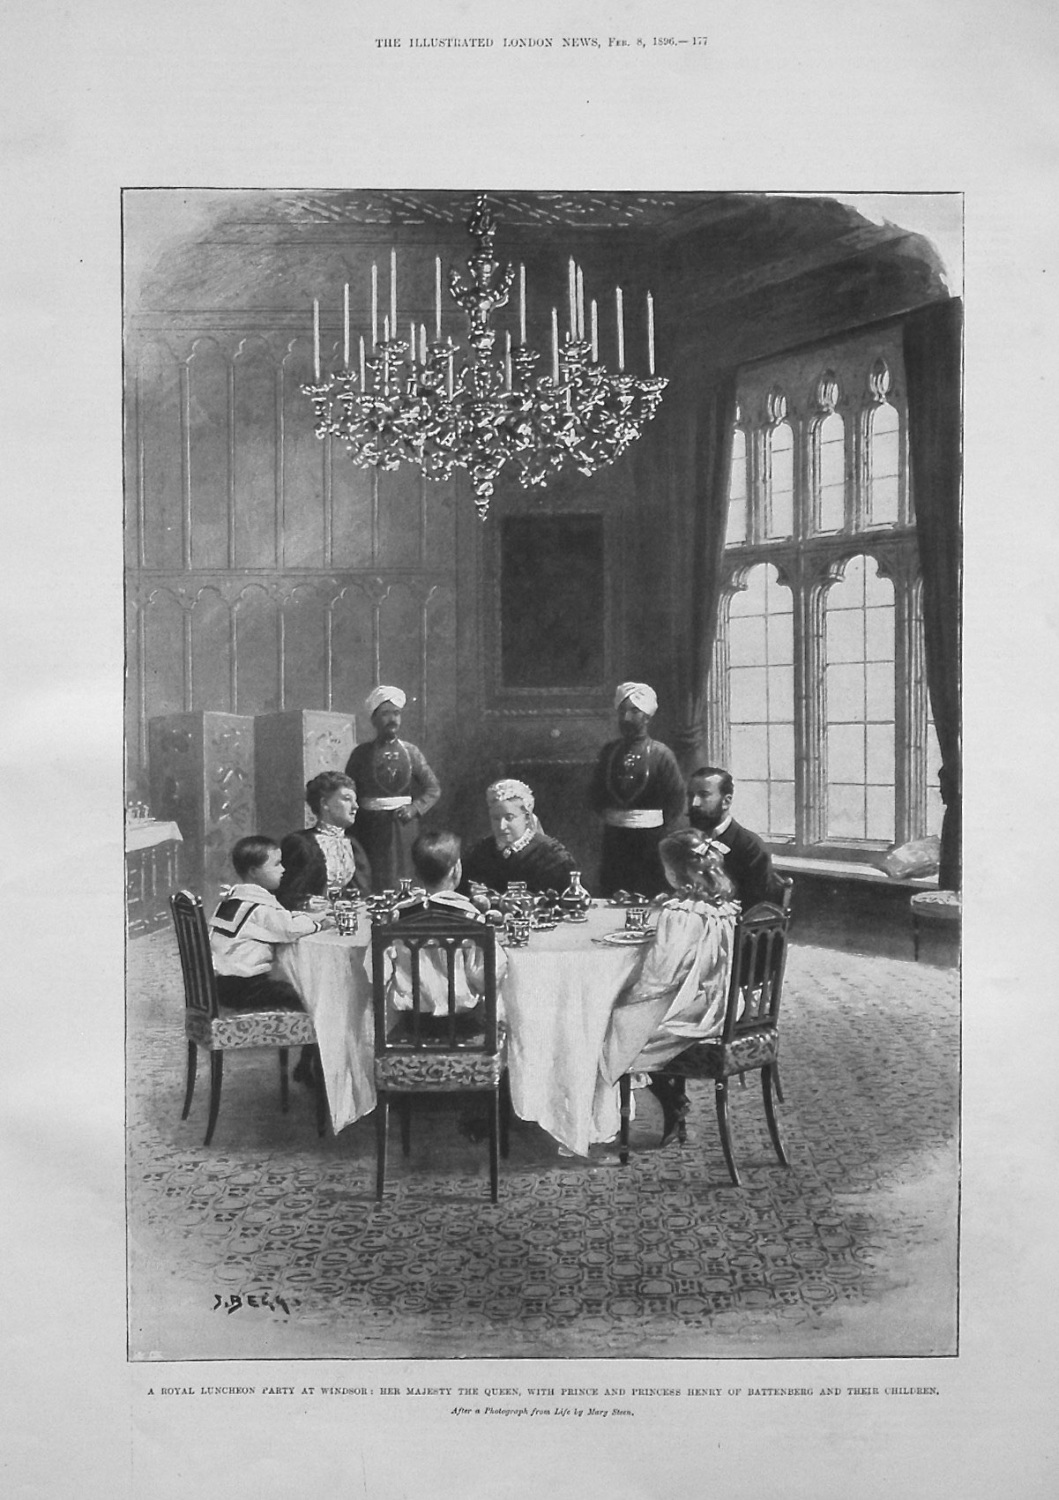 A Royal Luncheon Party at Windsor : Her Majesty the Queen, with Prince and